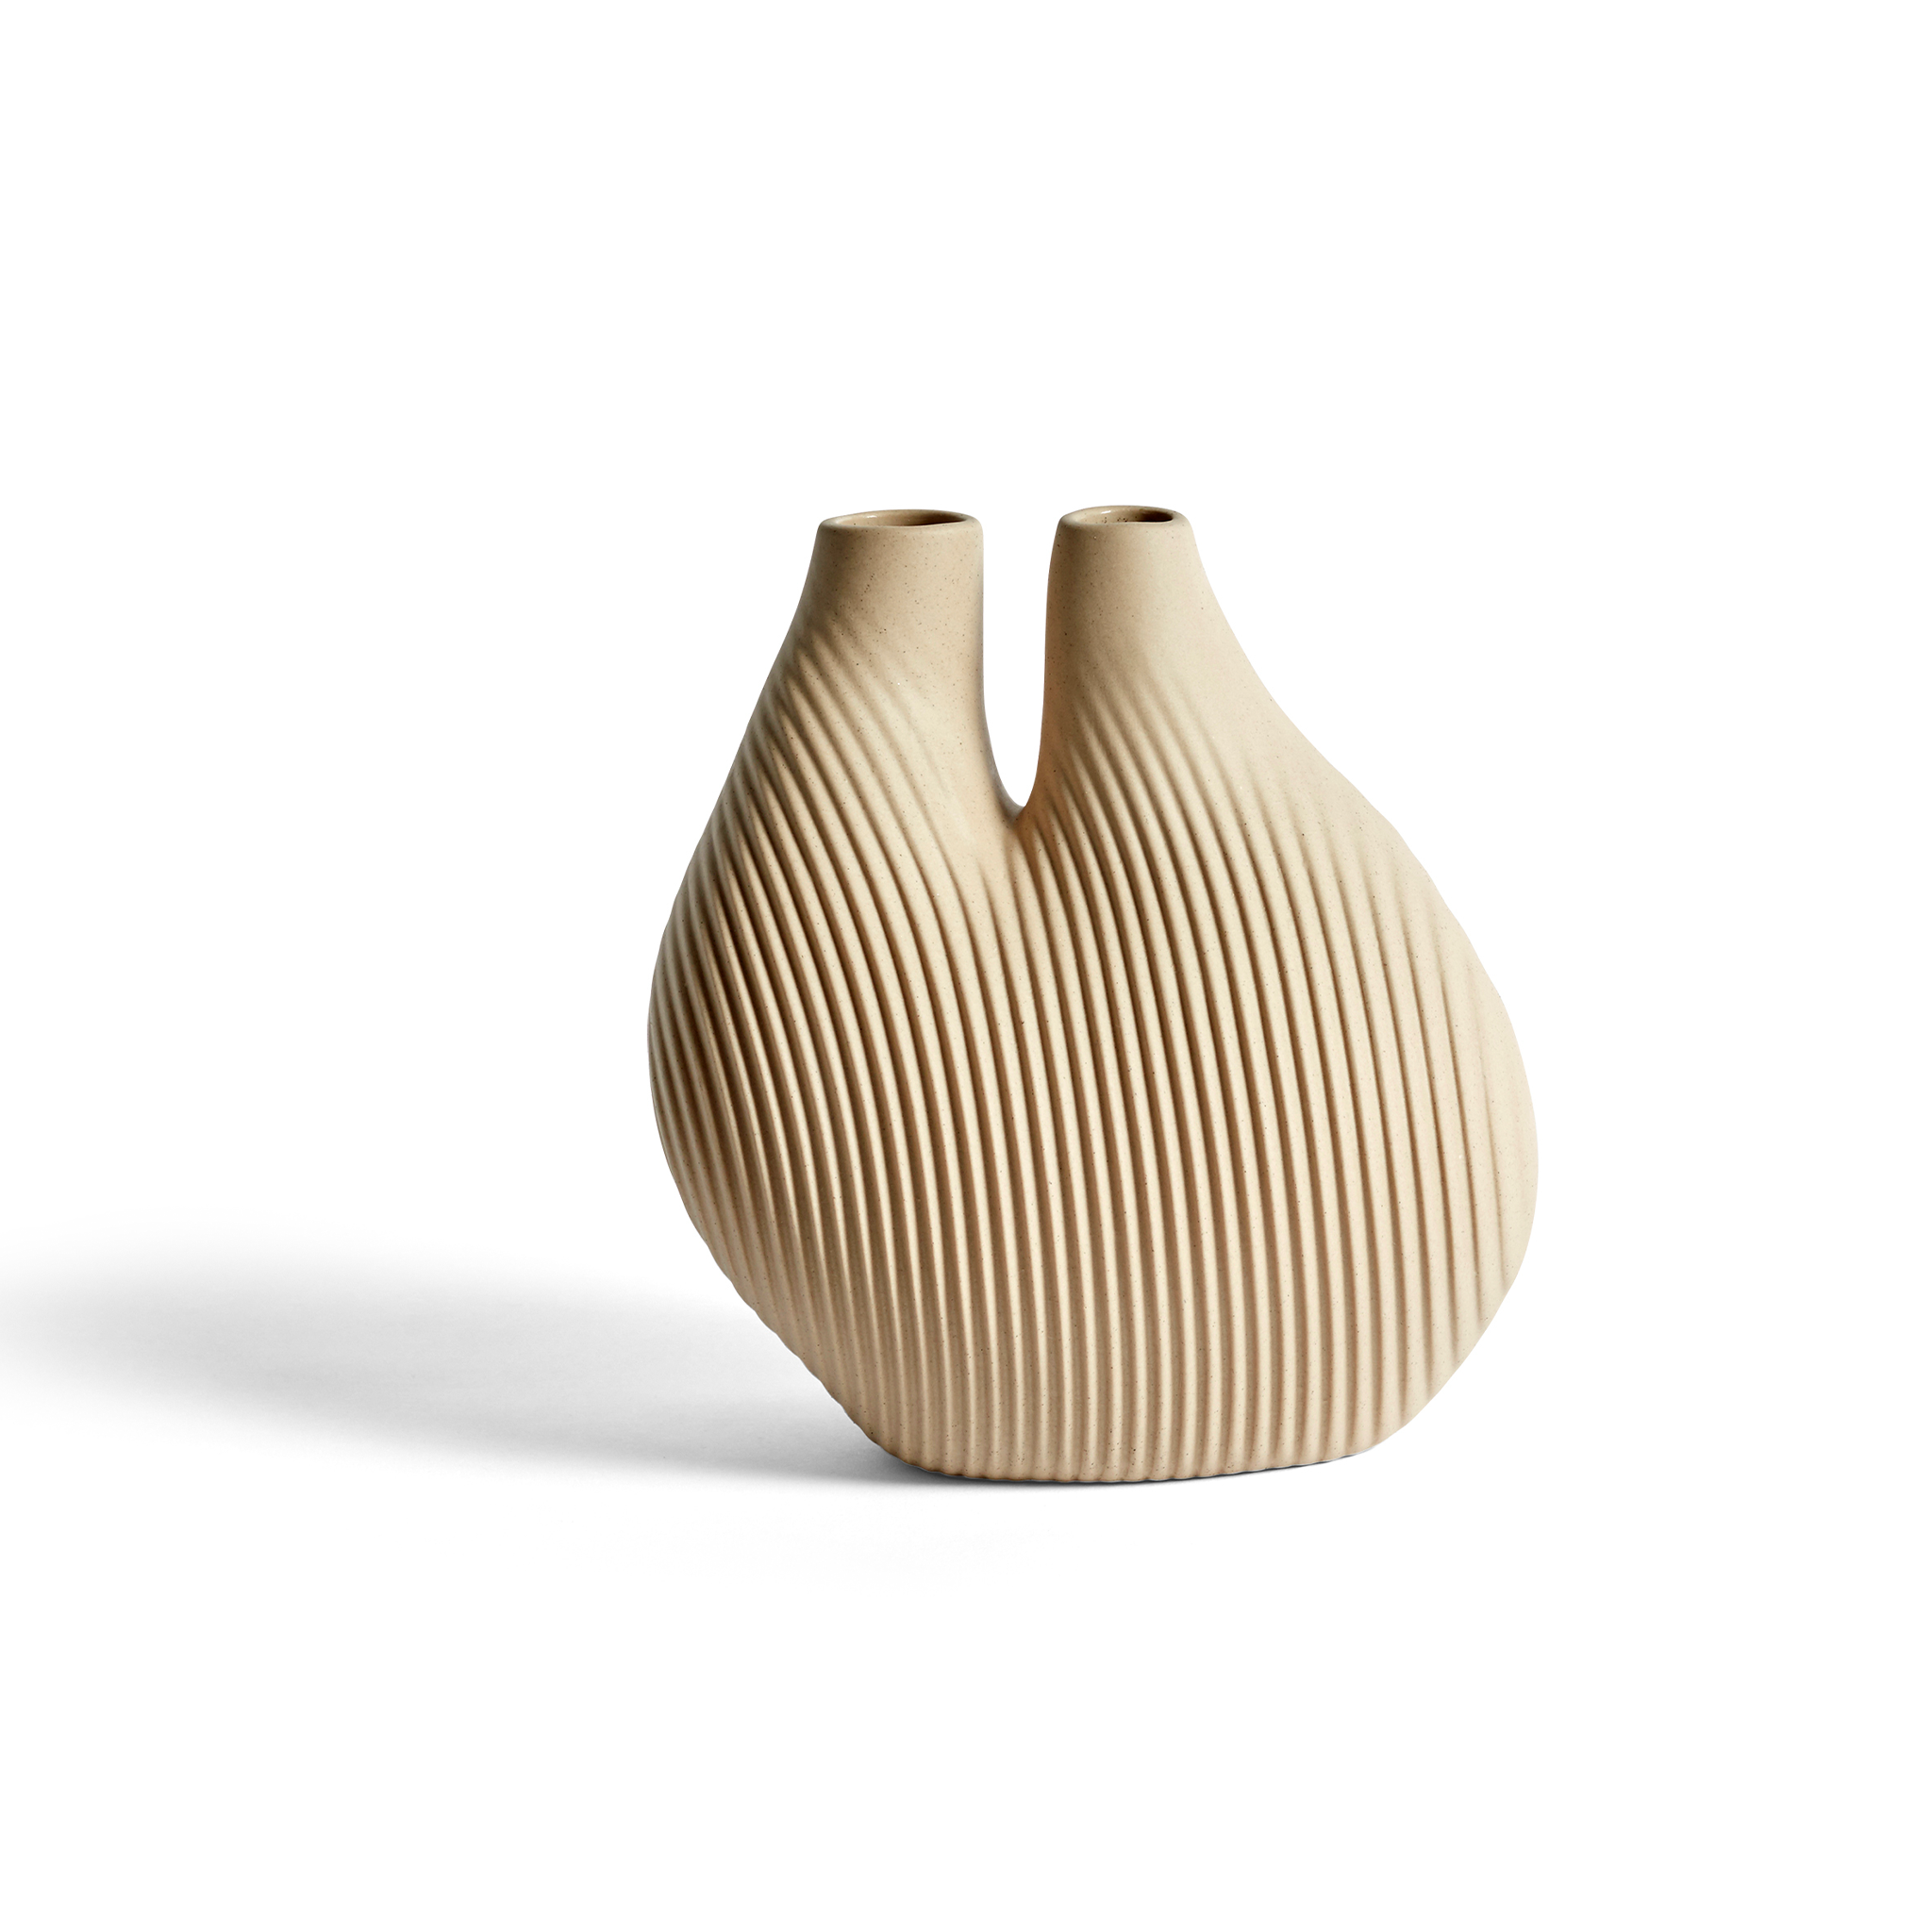 W&S Vases by Wang & Söderström for Hay